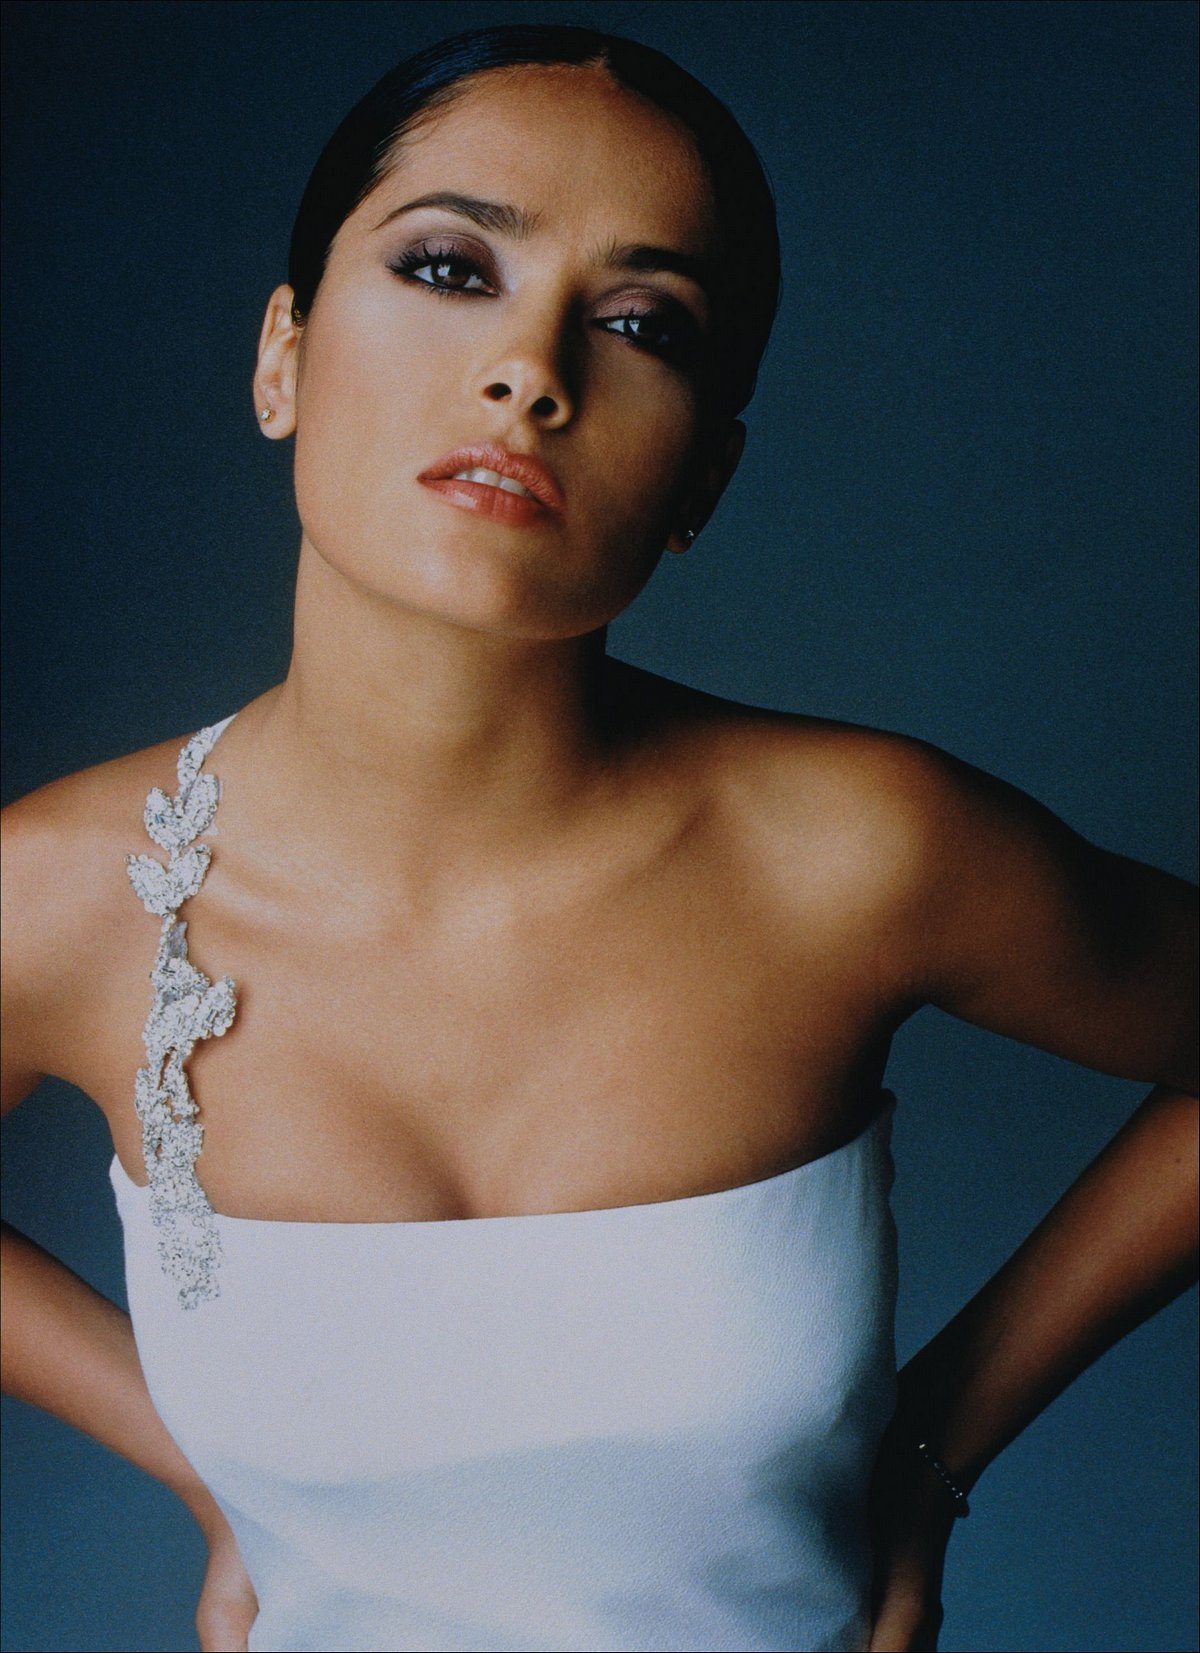 salma hayek 20 Oh, wait, cousin marriage is legal in 26 states. That's right, all you have ...